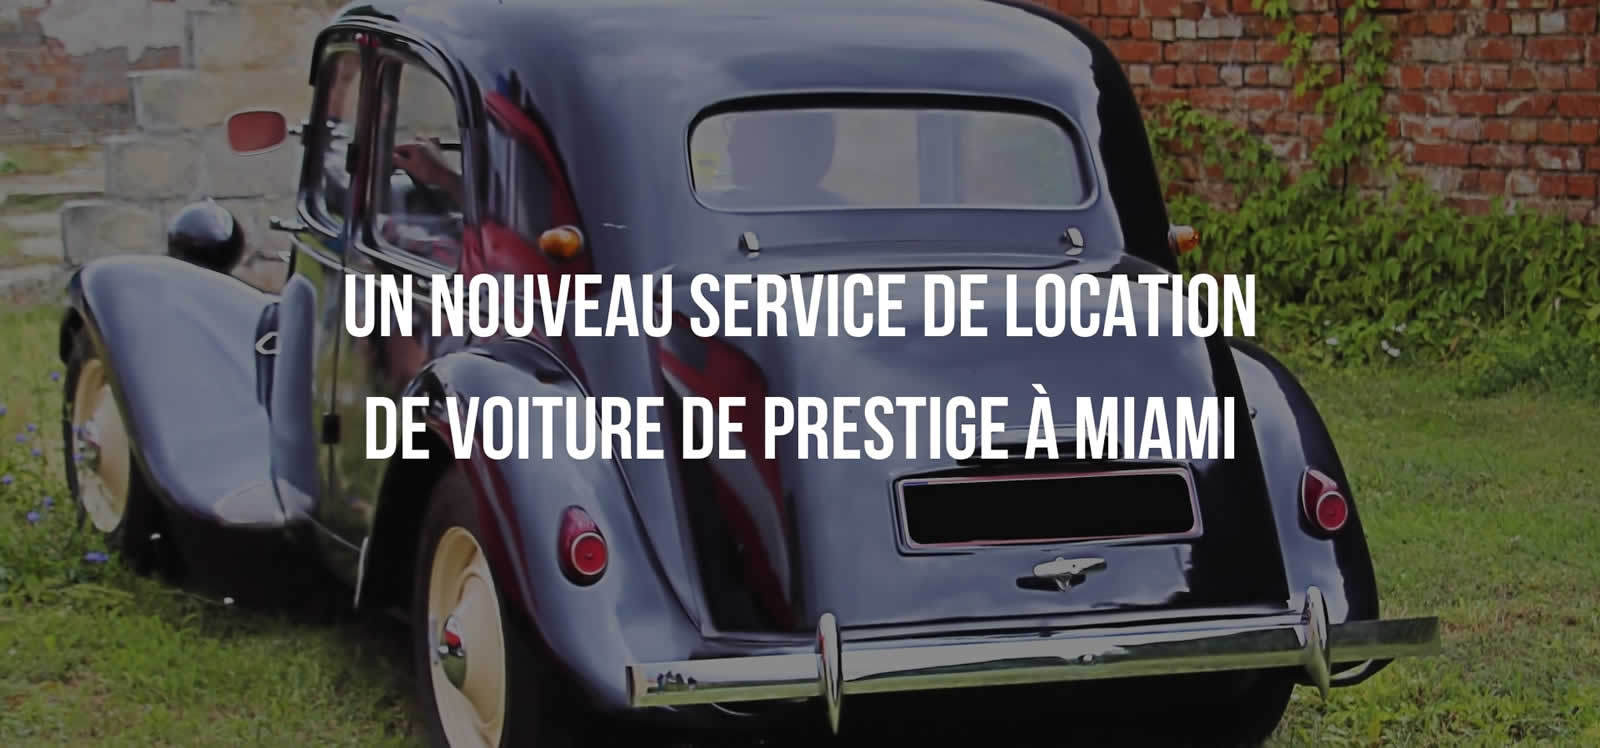 michel-mieze-location-voiture-prestige-citroen-traction-15-cv-s04